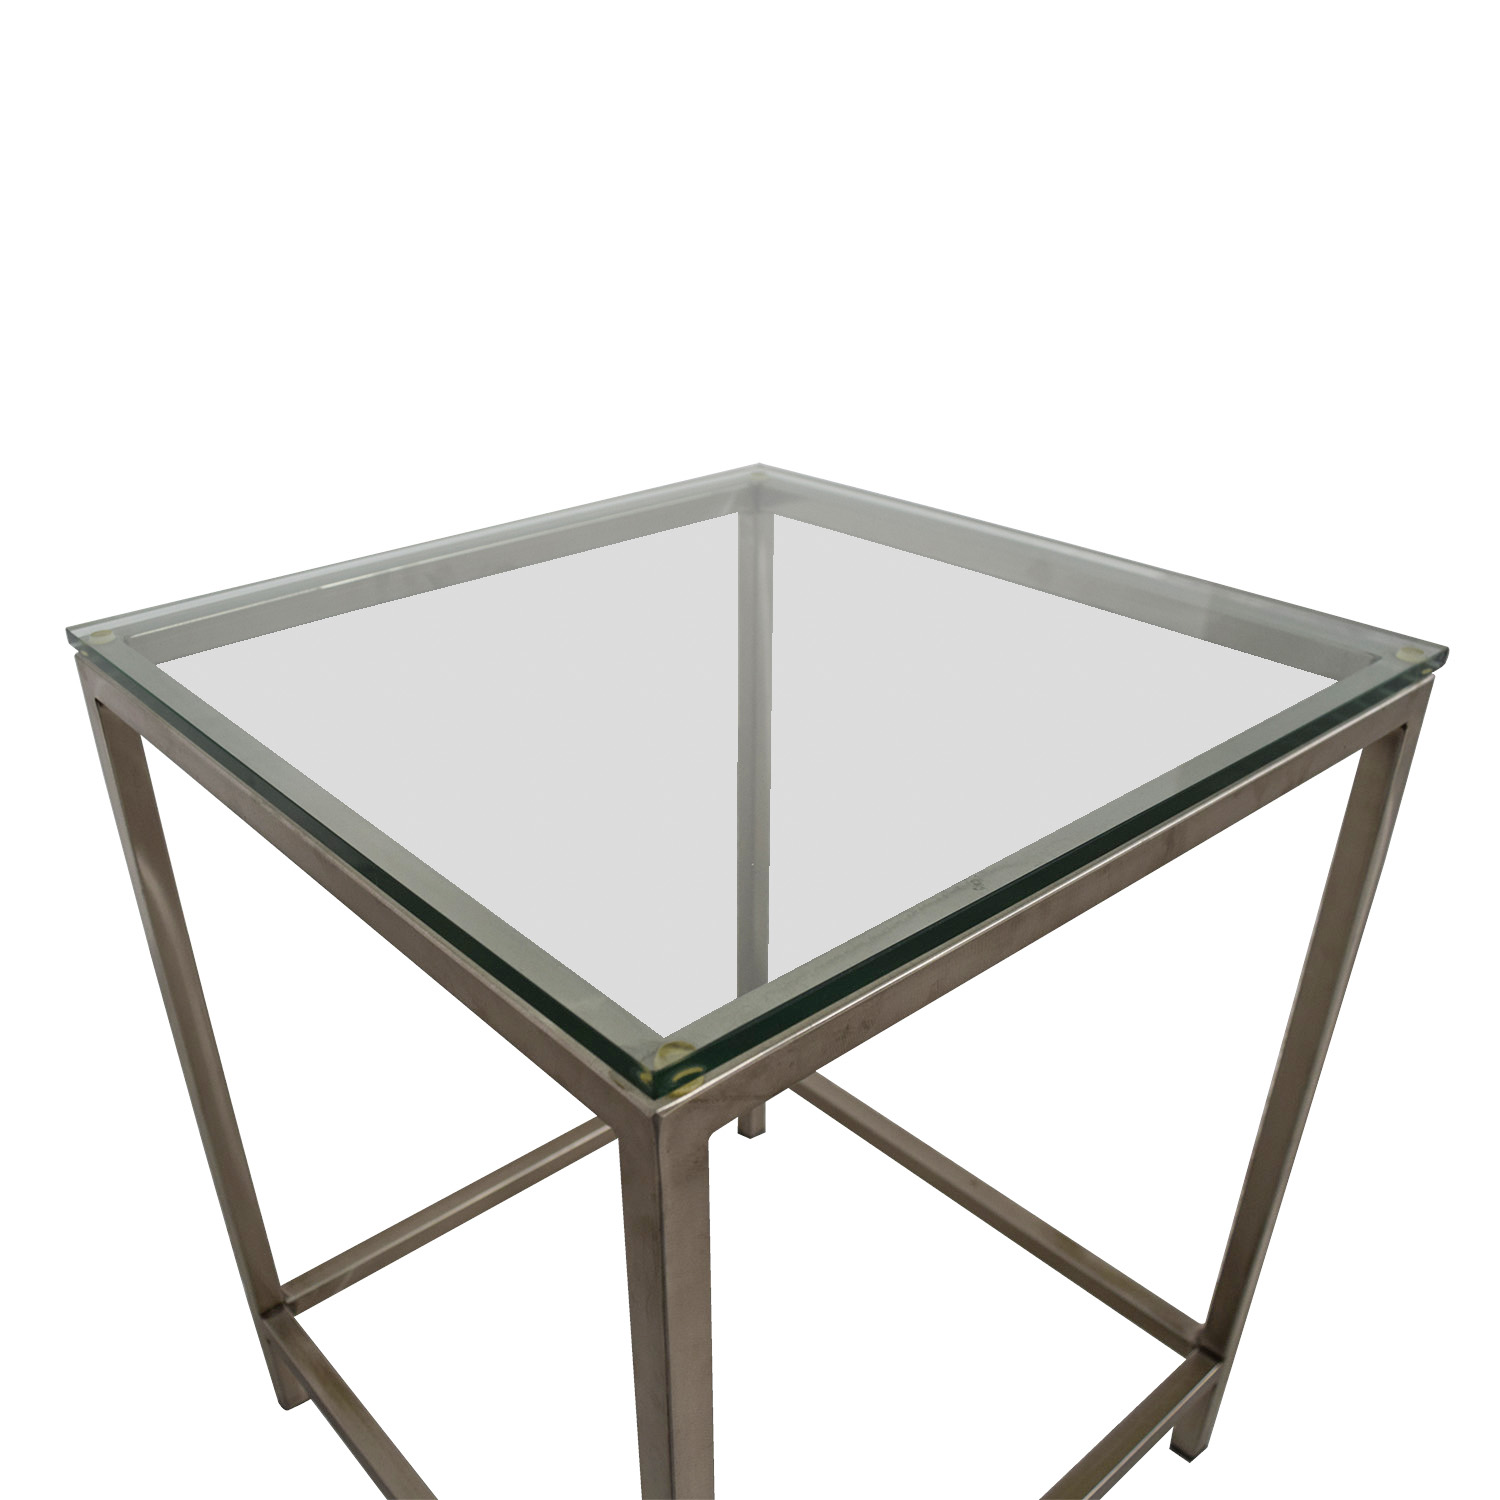 Square Glass End Tables 81 Off Crate And Barrel Crate And Barrel Square Glass And